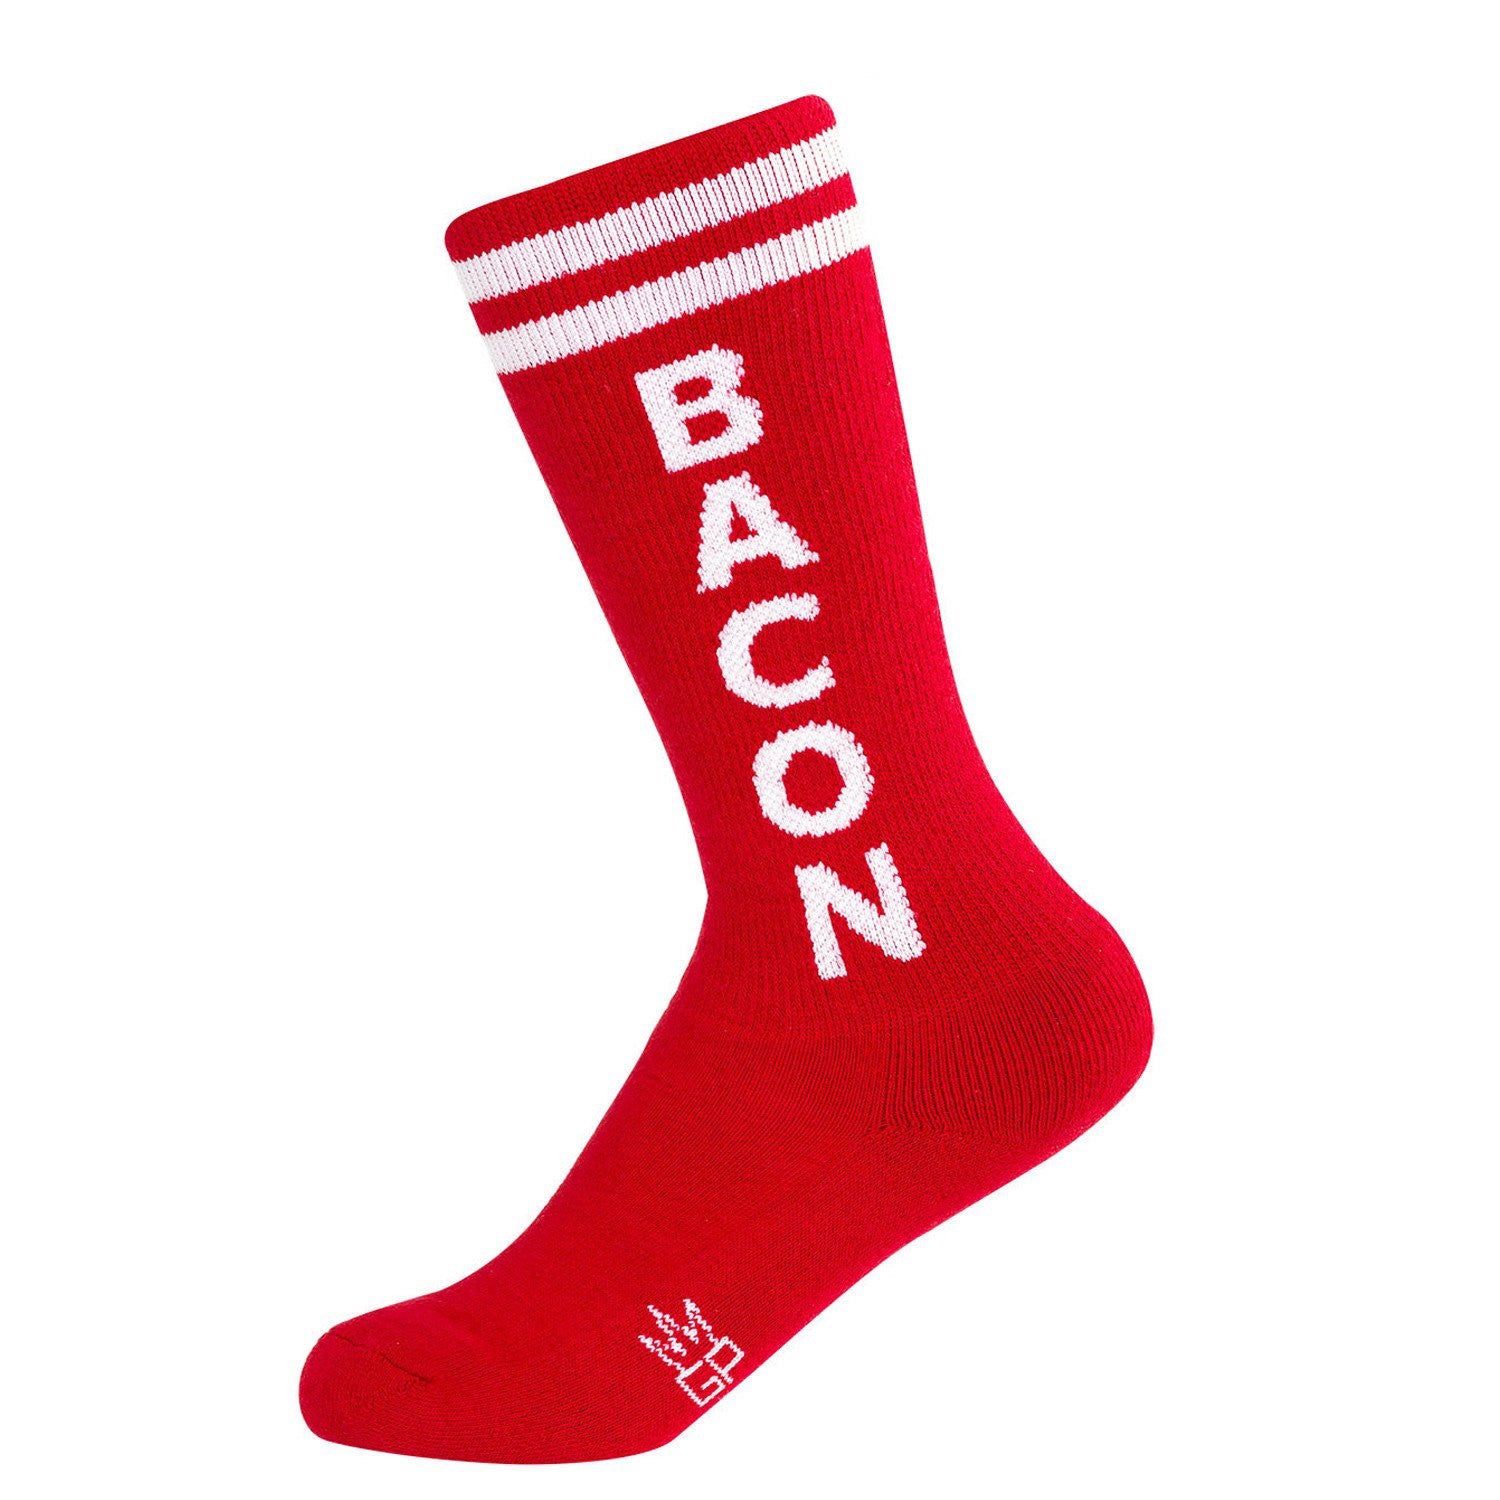 Kid's Bacon Knee High